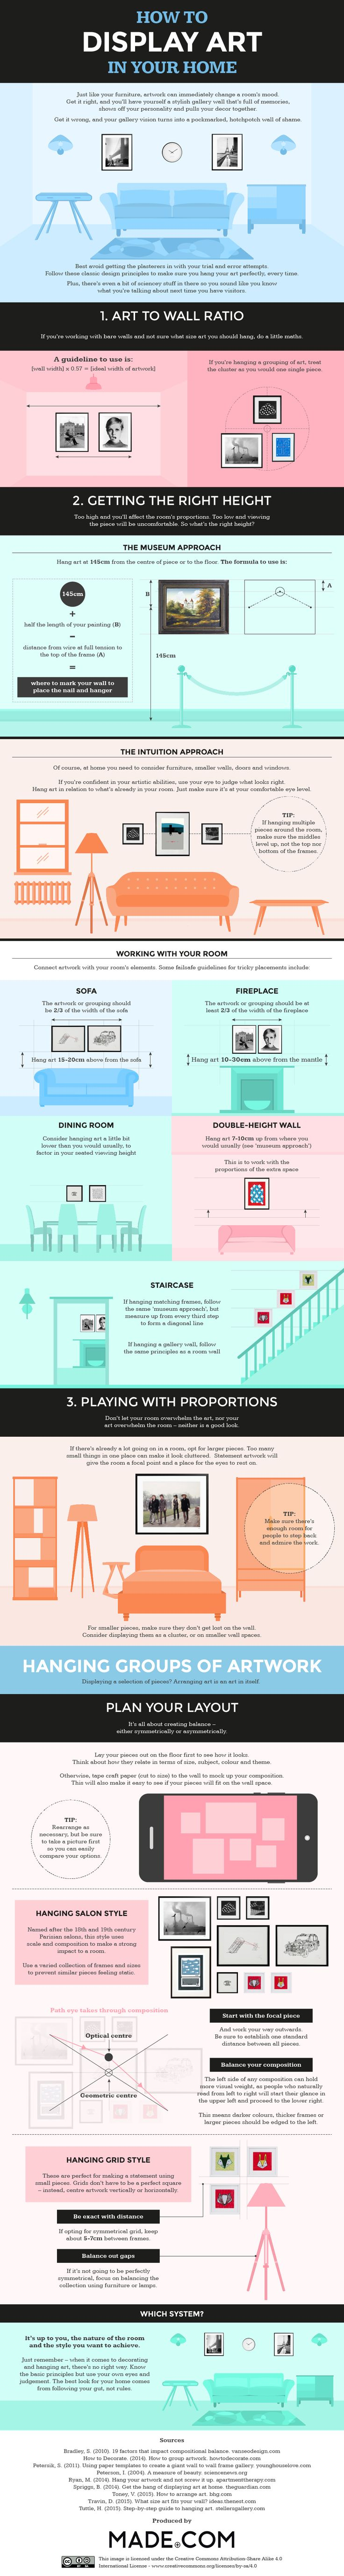 Infographic on how to display art in your home. Thanks @ejfsf